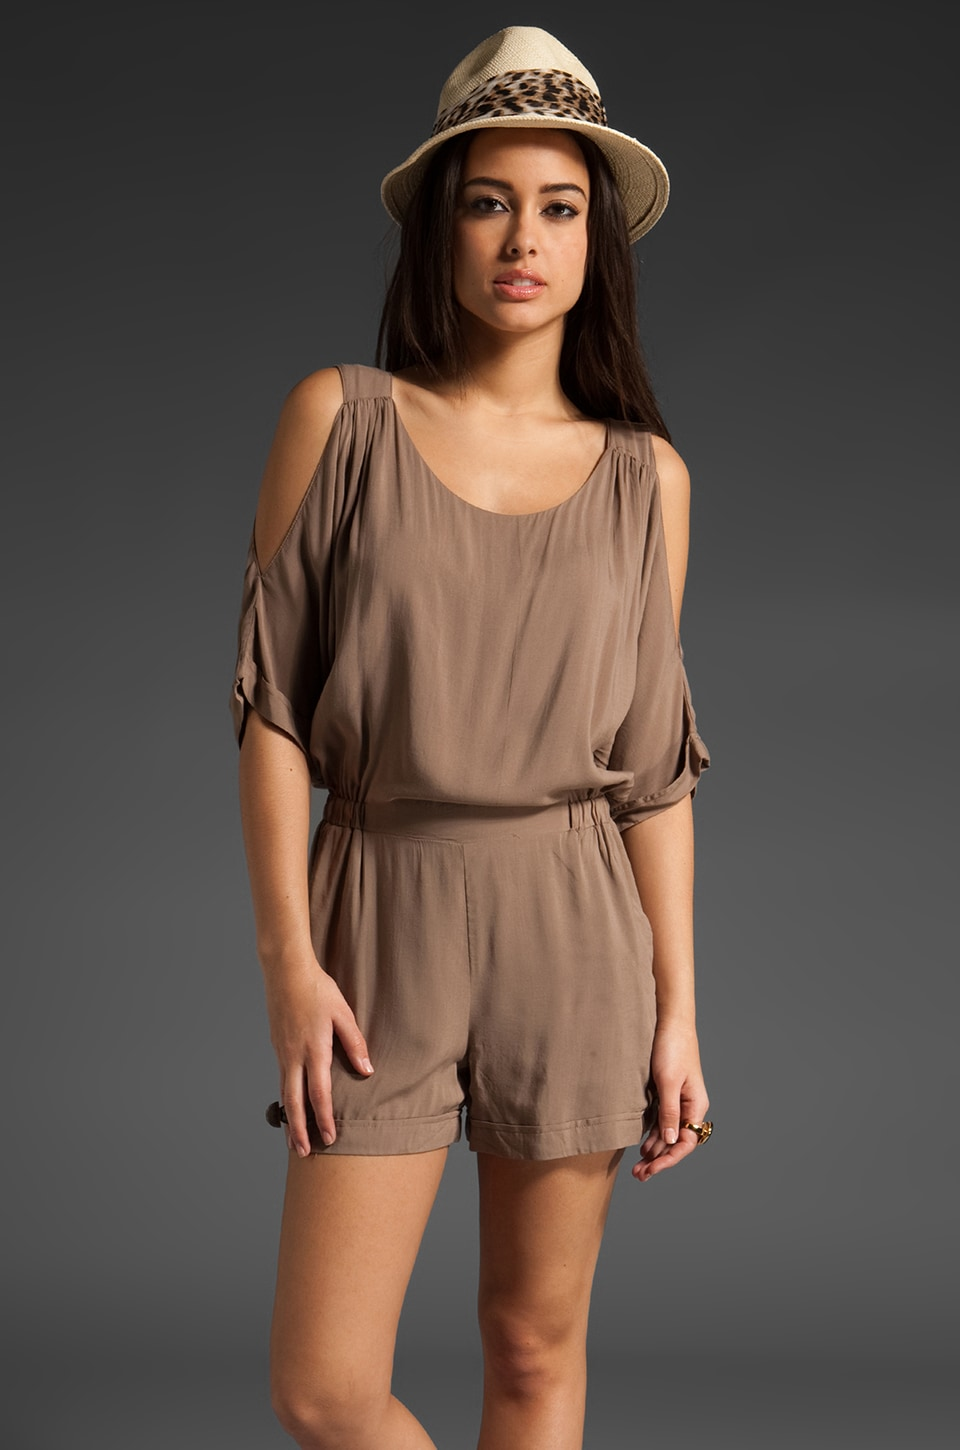 Ella Moss Dawn Cold Shoulder Romper in Chino